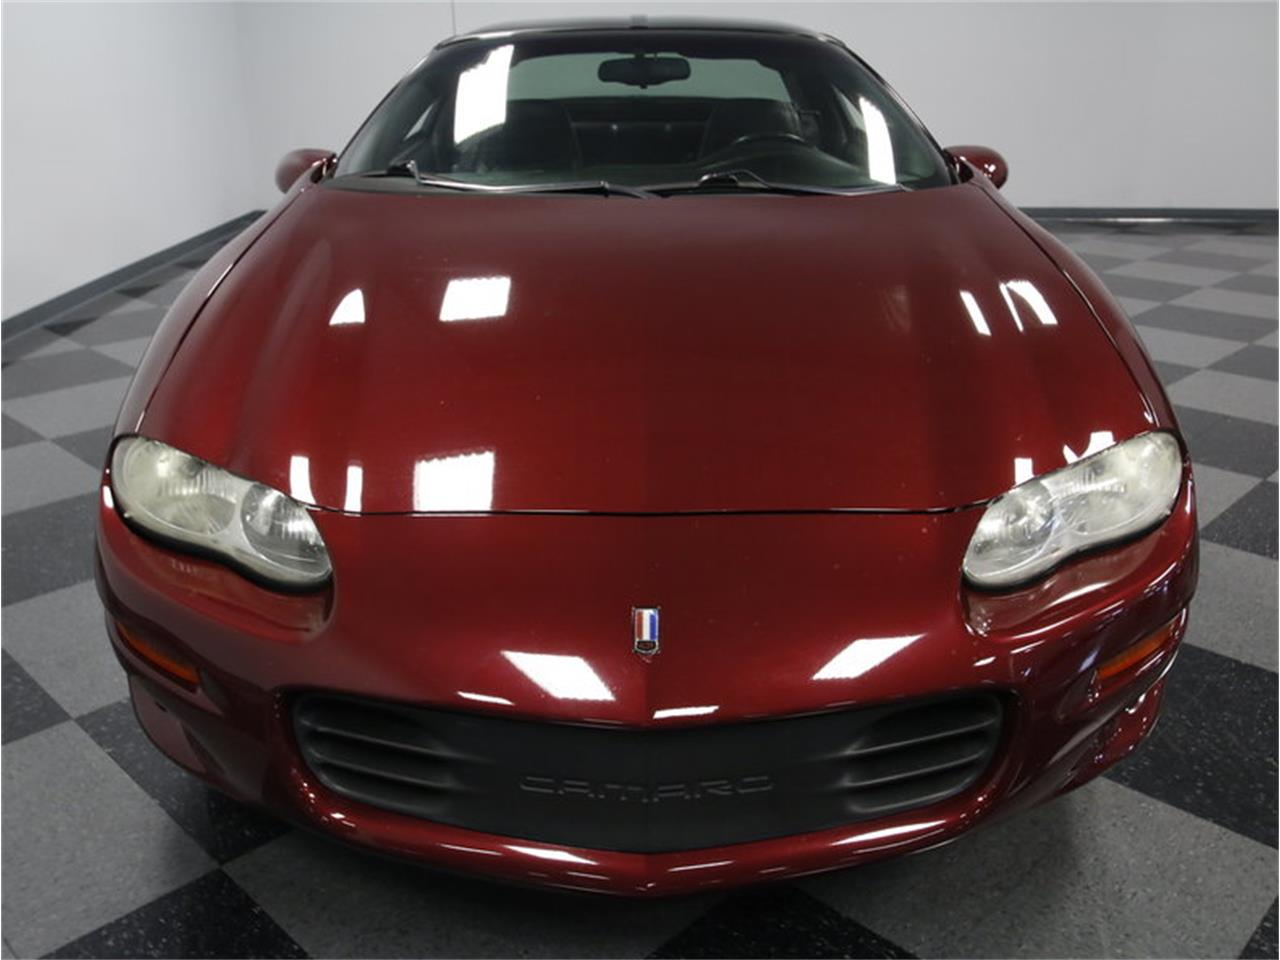 Large Picture of 2000 Chevrolet Camaro Z28 located in North Carolina - $15,995.00 Offered by Streetside Classics - Charlotte - LHHO